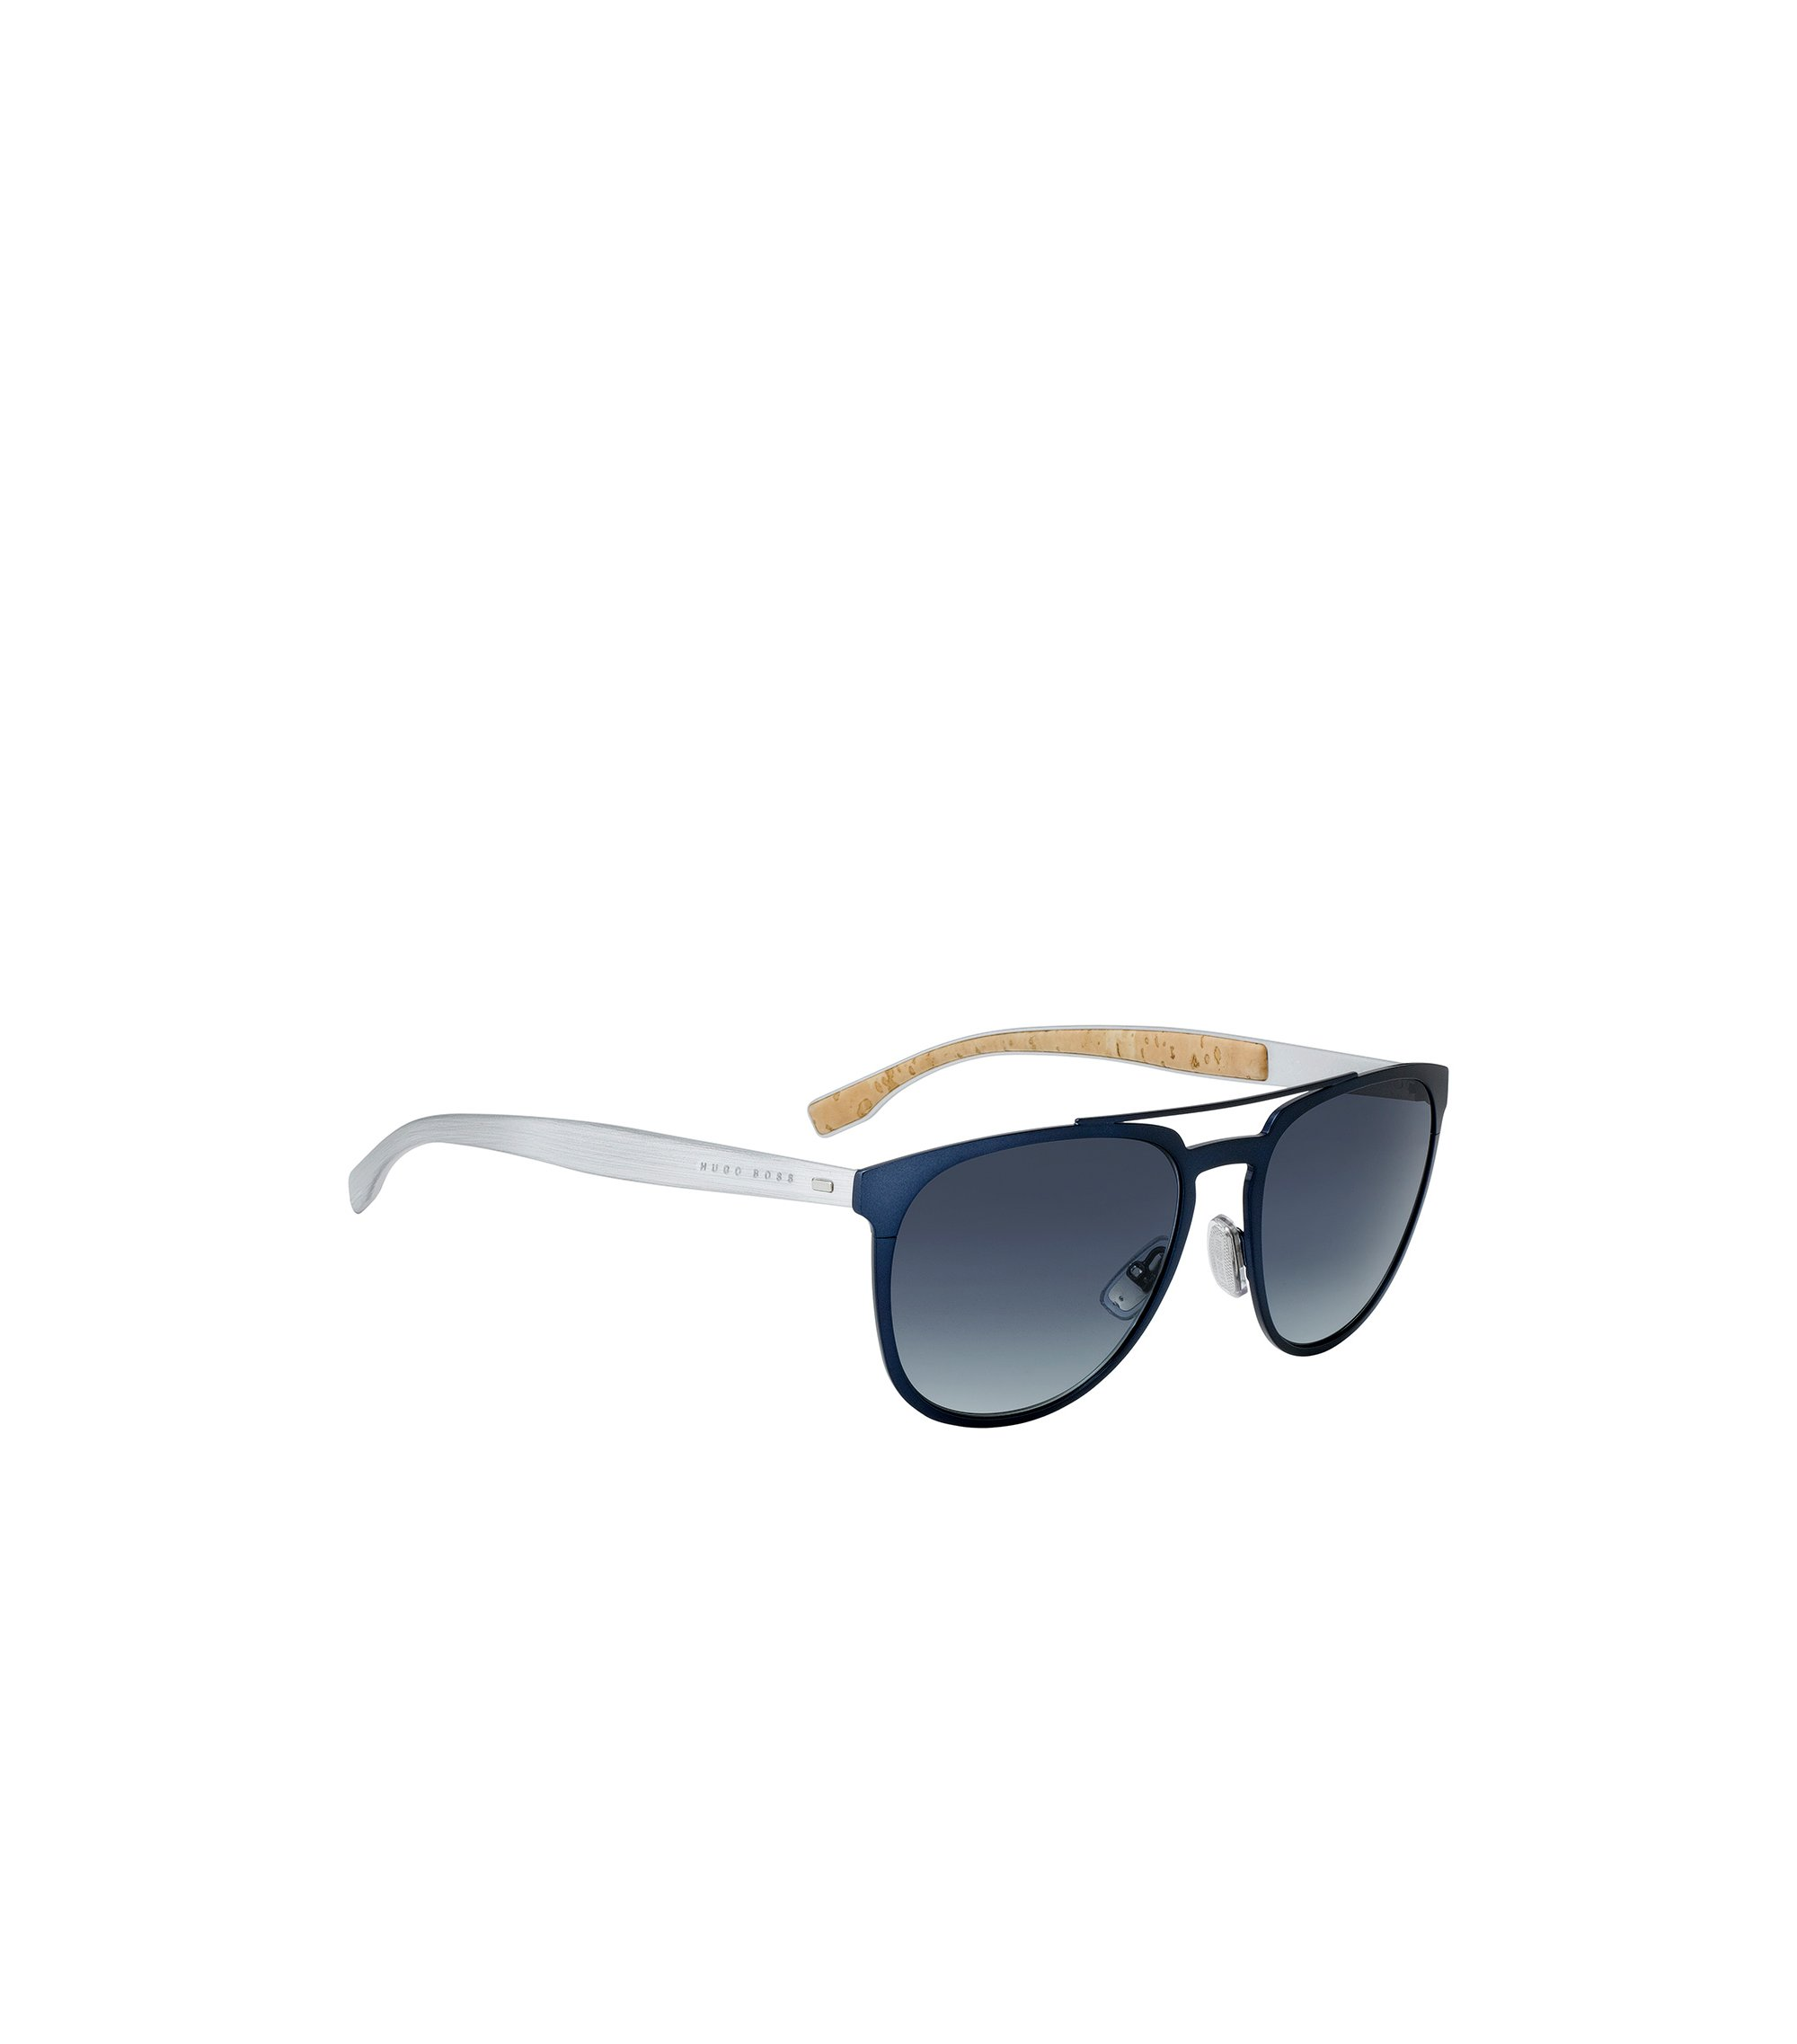 Aviator sunglasses with thin blue metallic frames, Blue